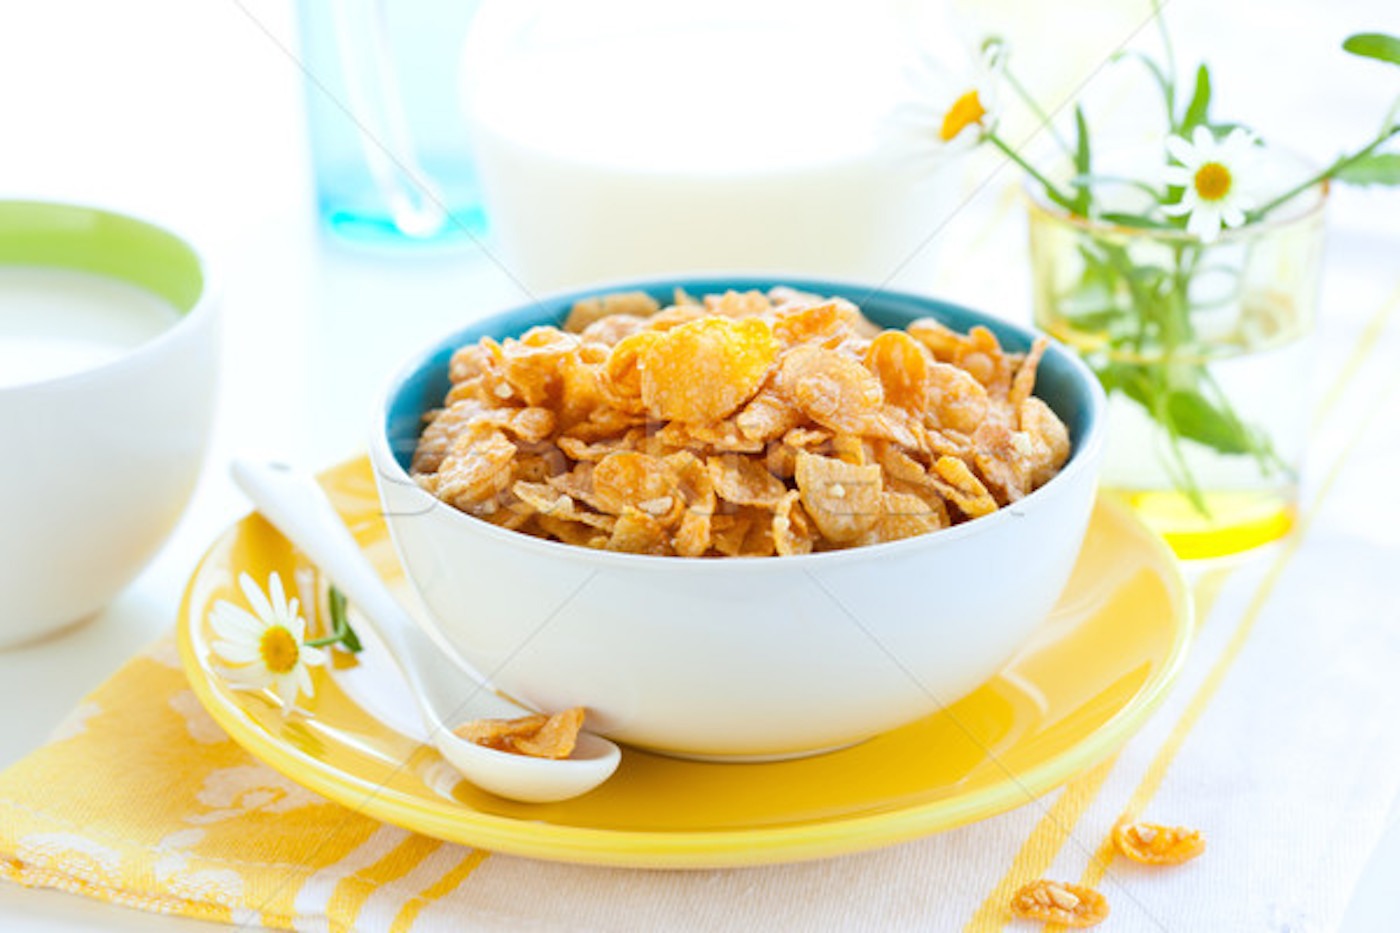 297748_stock-photo-corn-flakes-and-milk